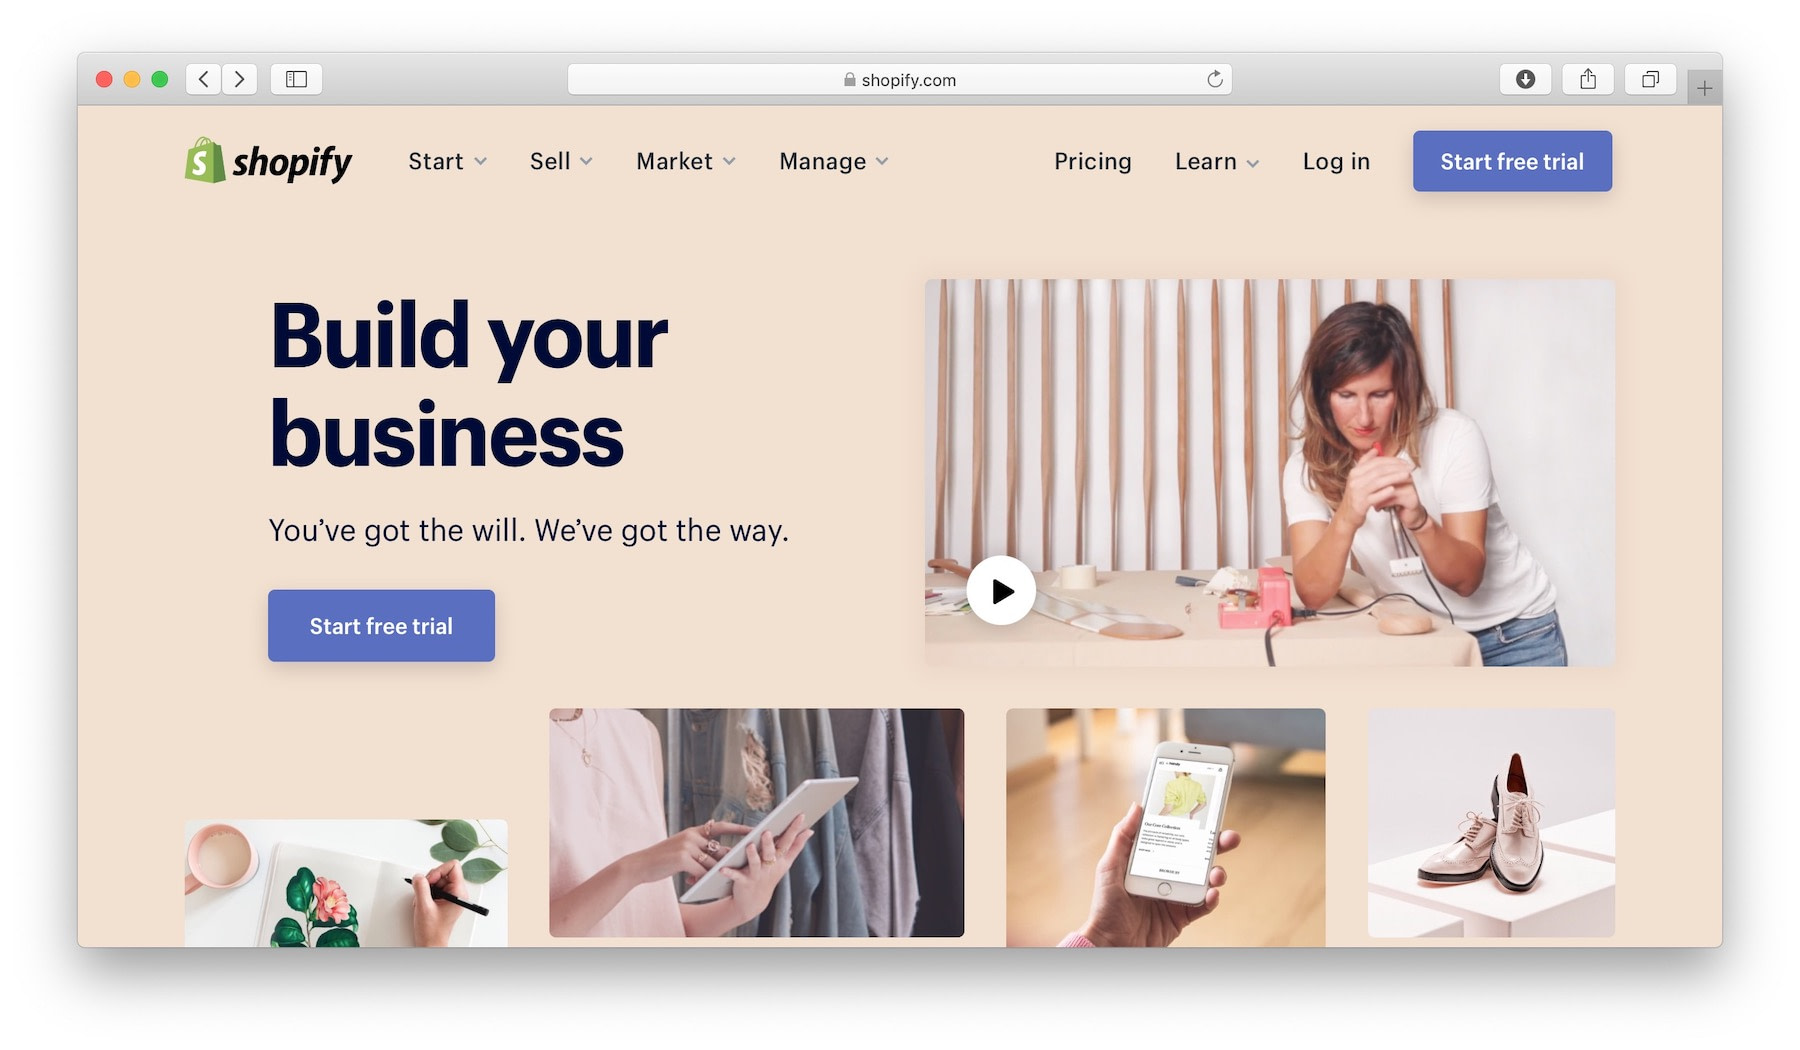 Shopify - the best mobile website builder if you need an e-commerce store